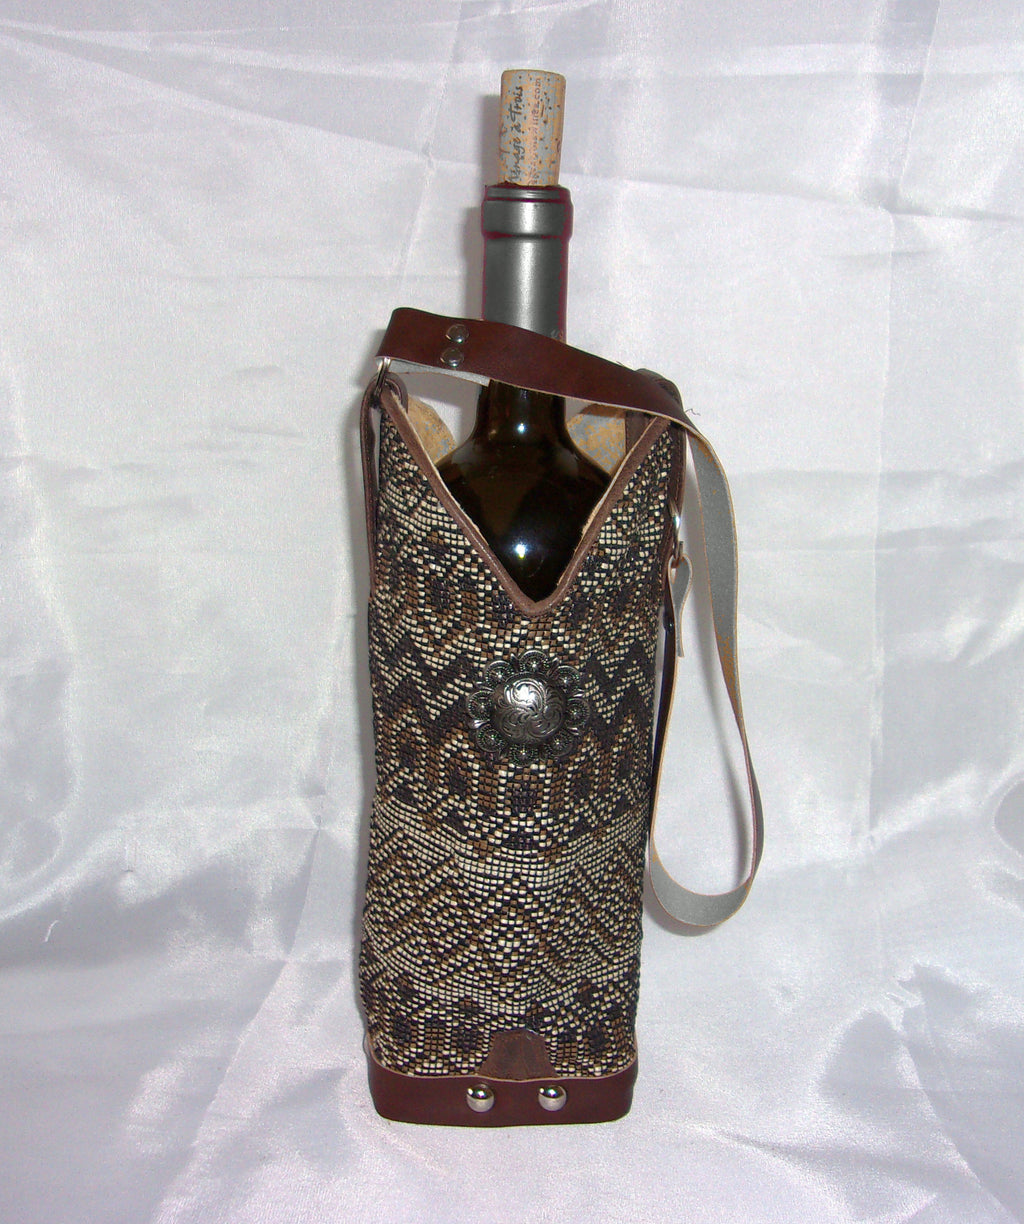 wt447 unique Leather Wine Tote handcrafted from recycled reclaimed cowboy boots